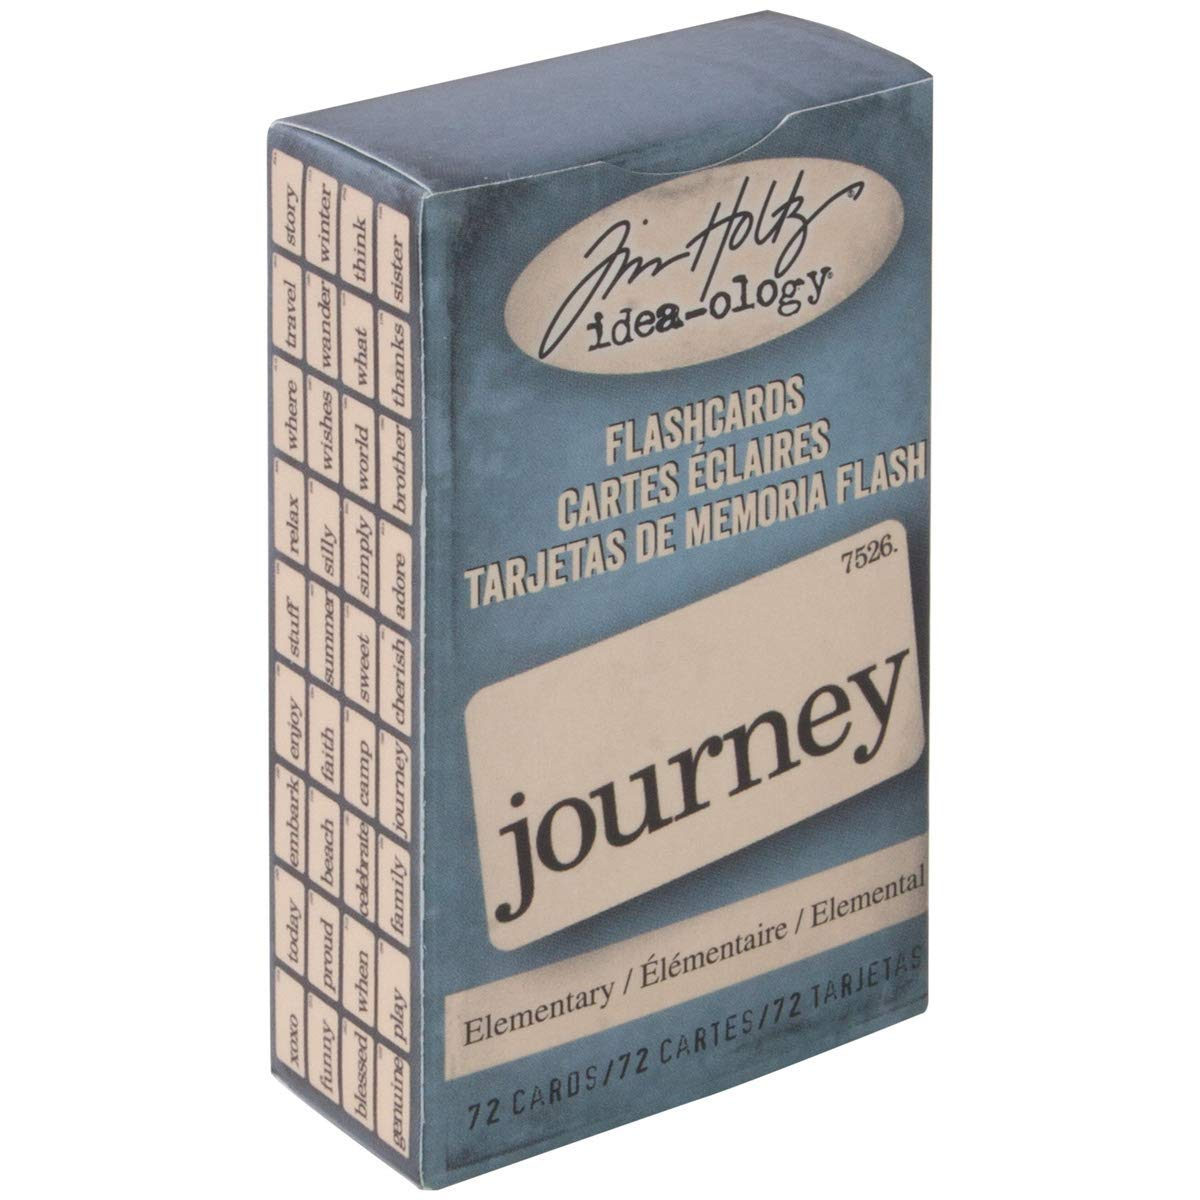 72 Double-Sided Cards TH93190 1.5 x 2.5 Inches Elementary Flash Cards by Tim Holtz Idea-ology